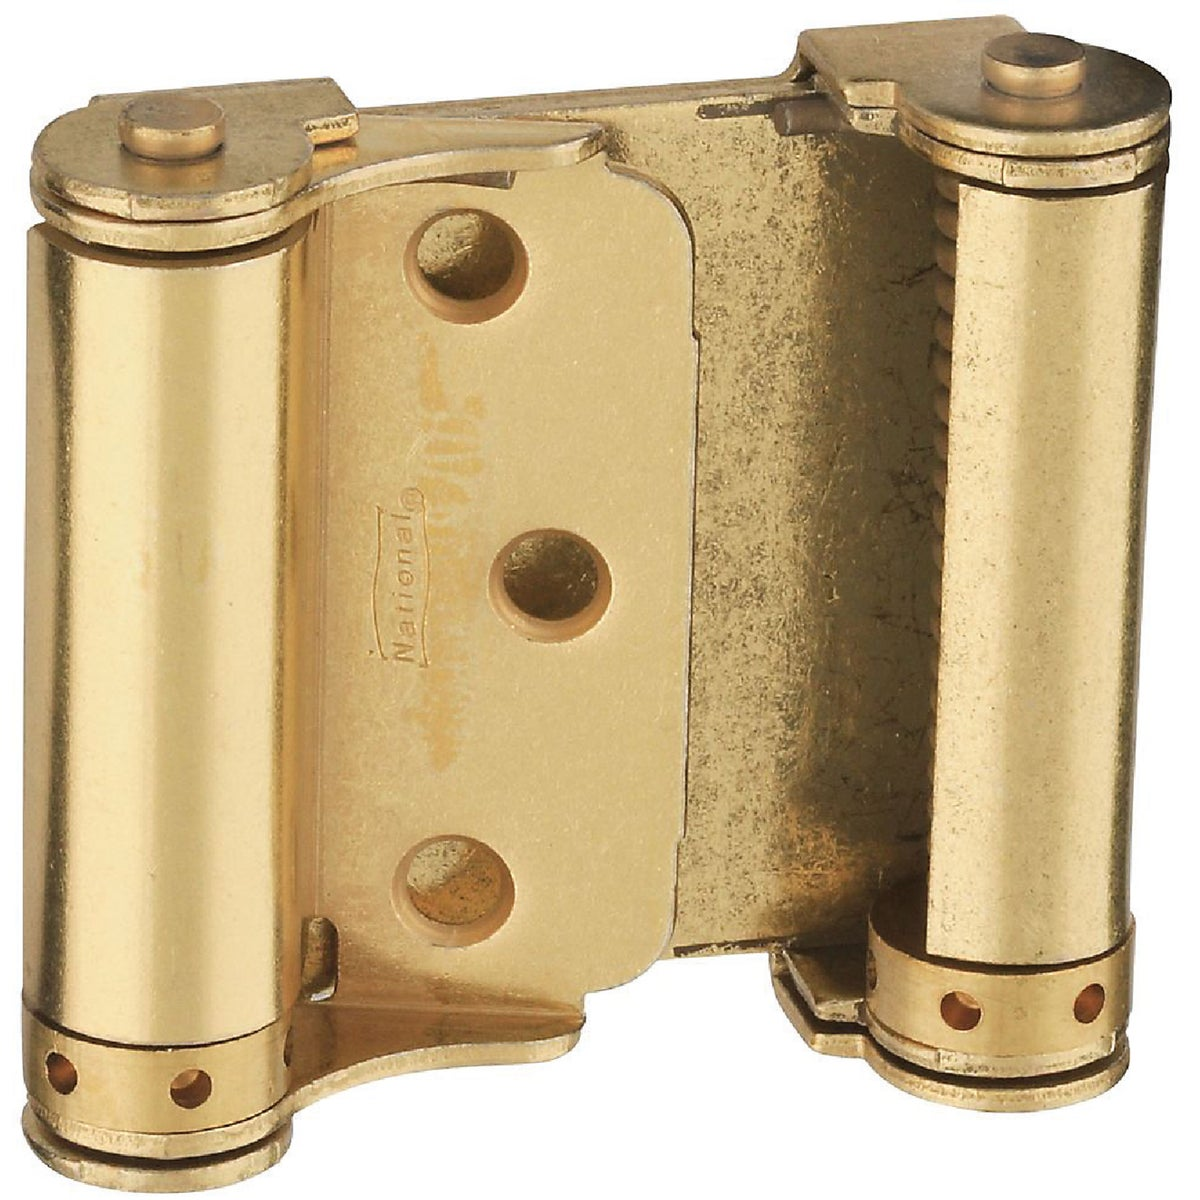 BRS DOUBLE-ACTION HINGE - N115303 by National Mfg Co